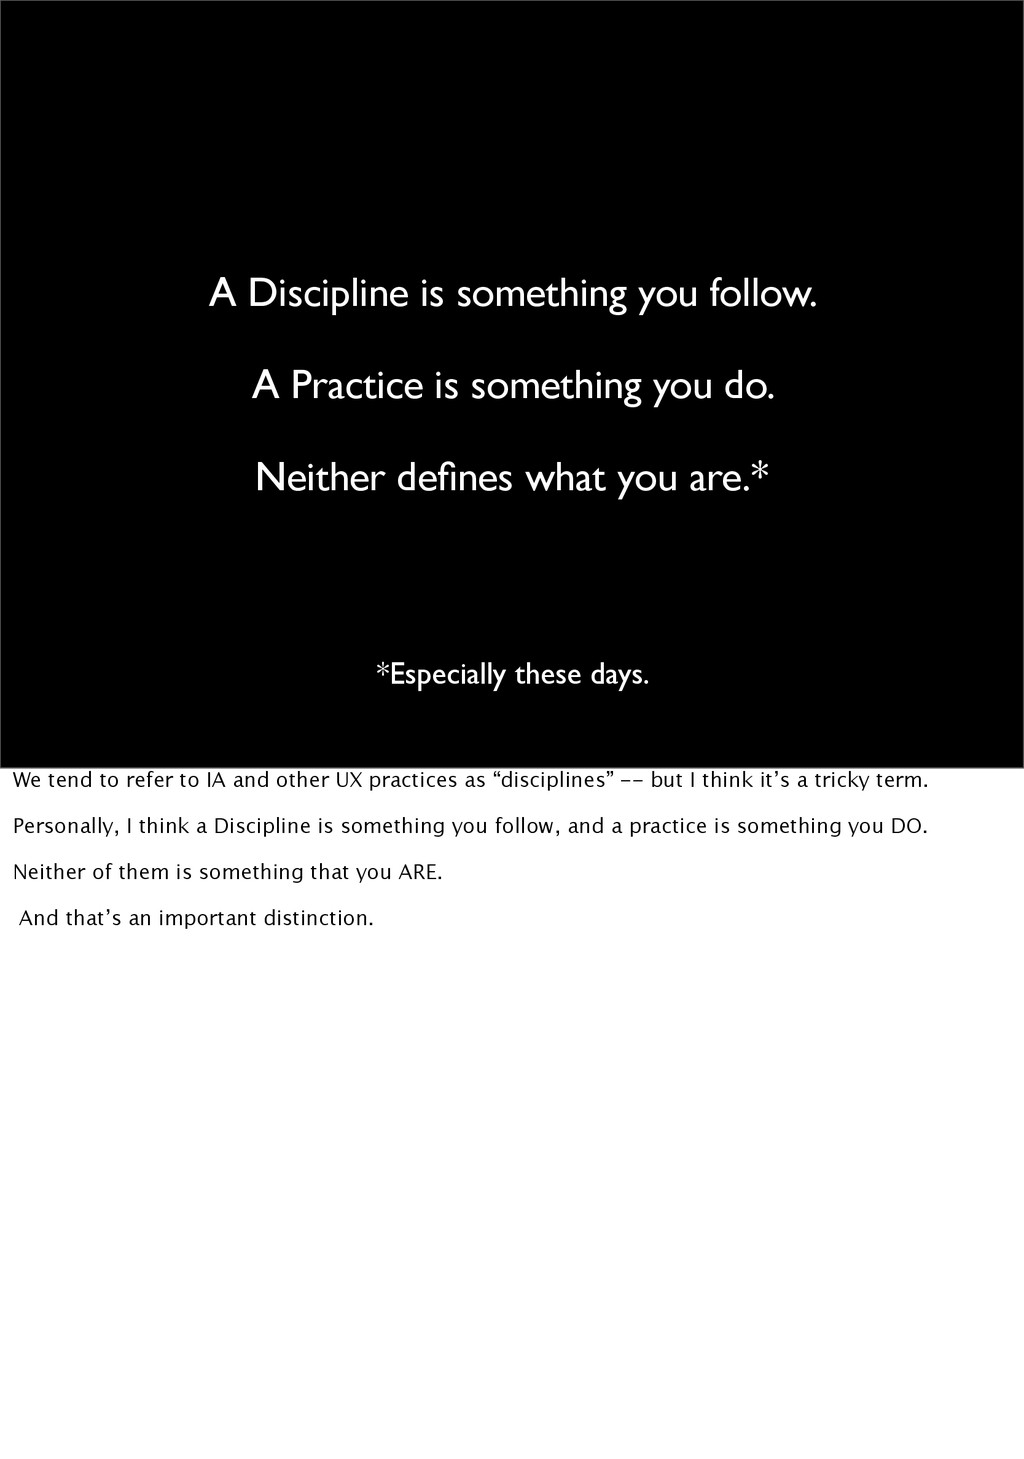 A Discipline is something you follow. A Practic...